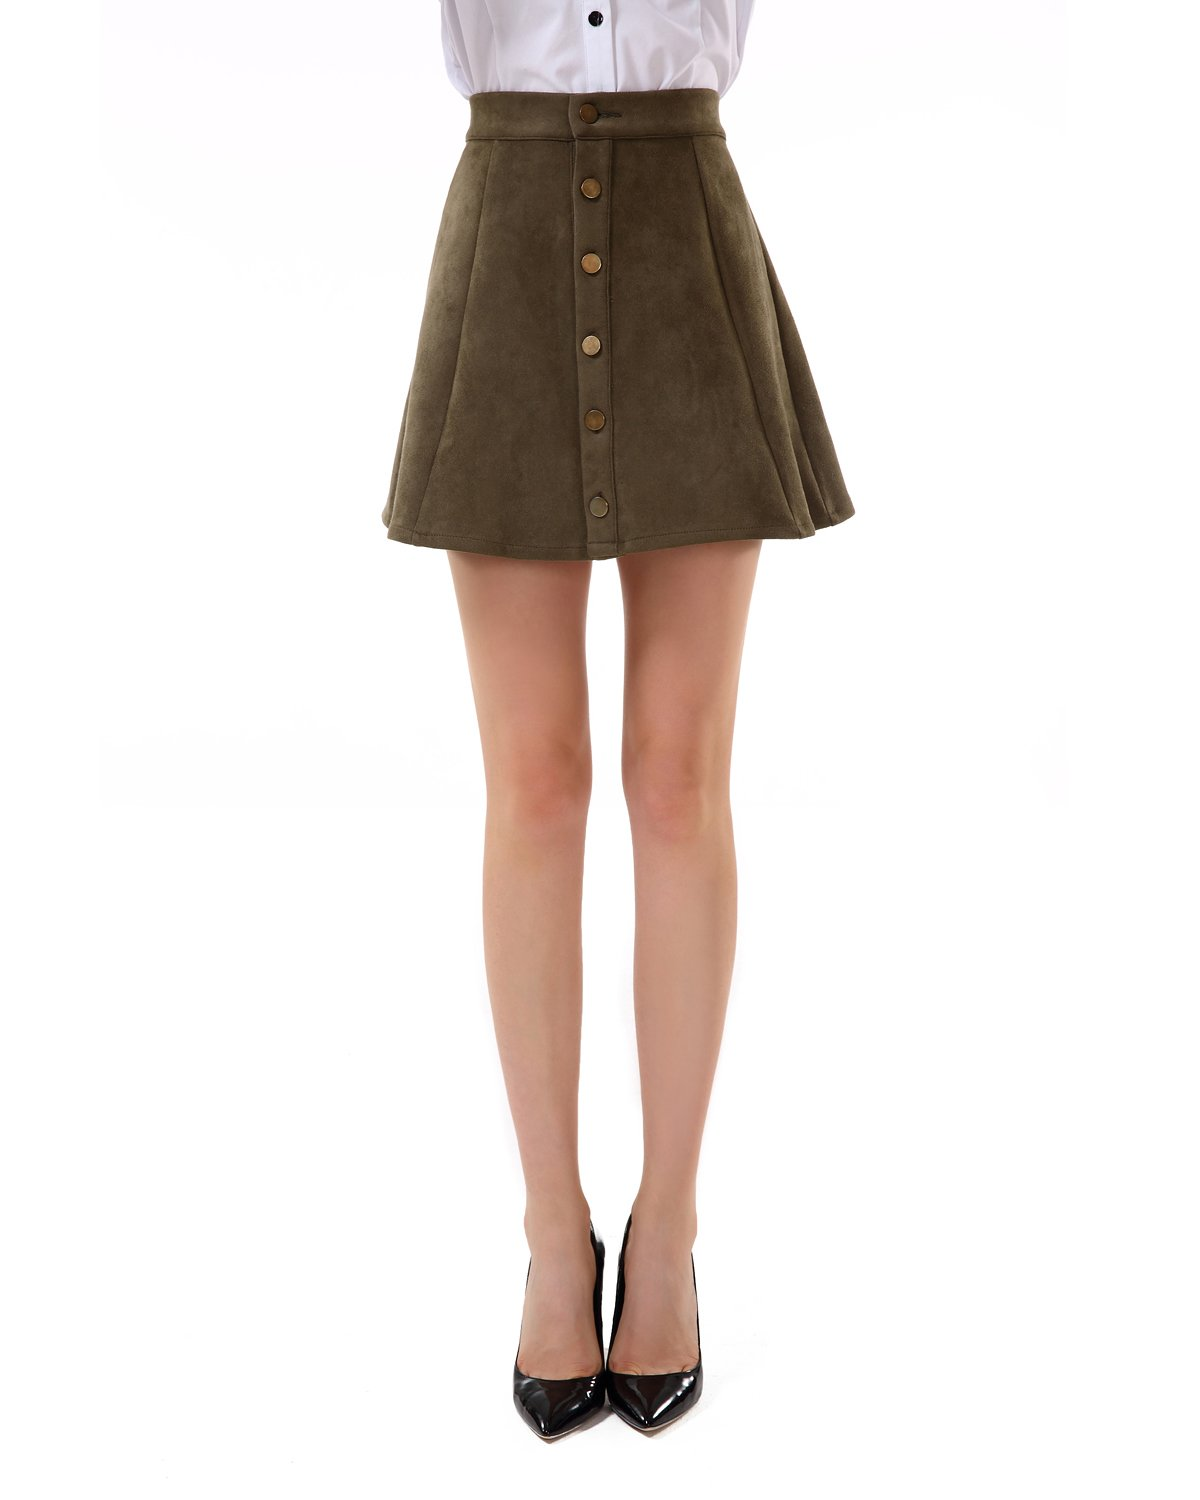 Apperloth Womens High Waist Suede Button Closure Solid A-Line Mini Short Skirt